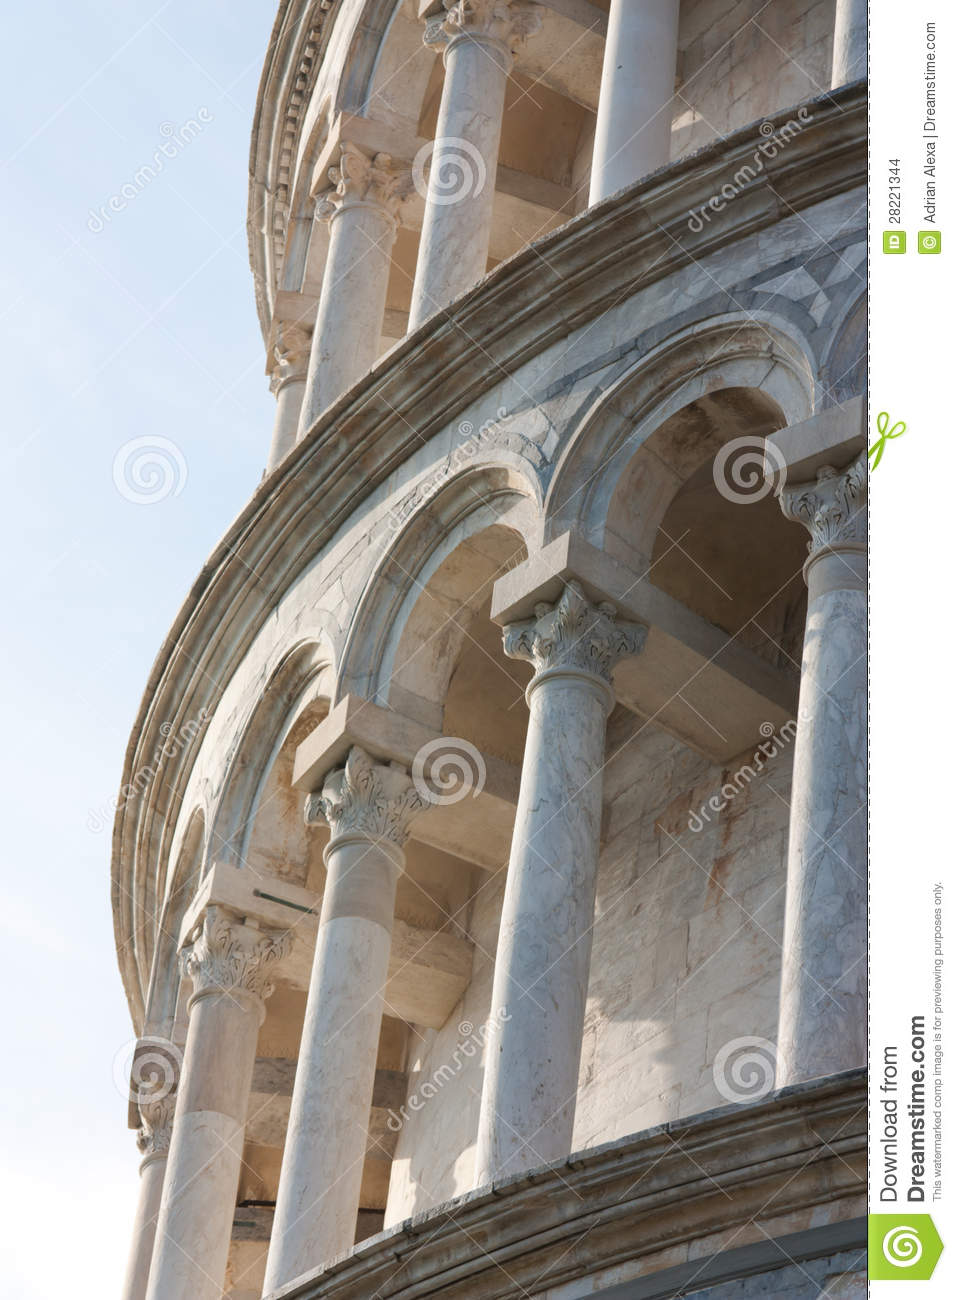 Columns details of leaning tower of pisa italy stock images image 28221344 - Lego architecture tour de pise ...